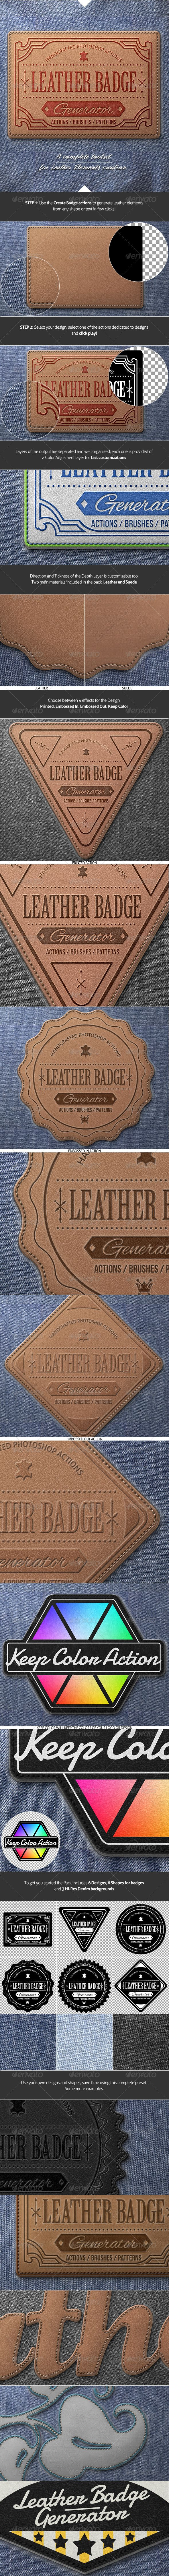 Leather Badge Generator - Photoshop Actions --- Generate realistic leather elements from your text, logo, shape or design in few clicks.